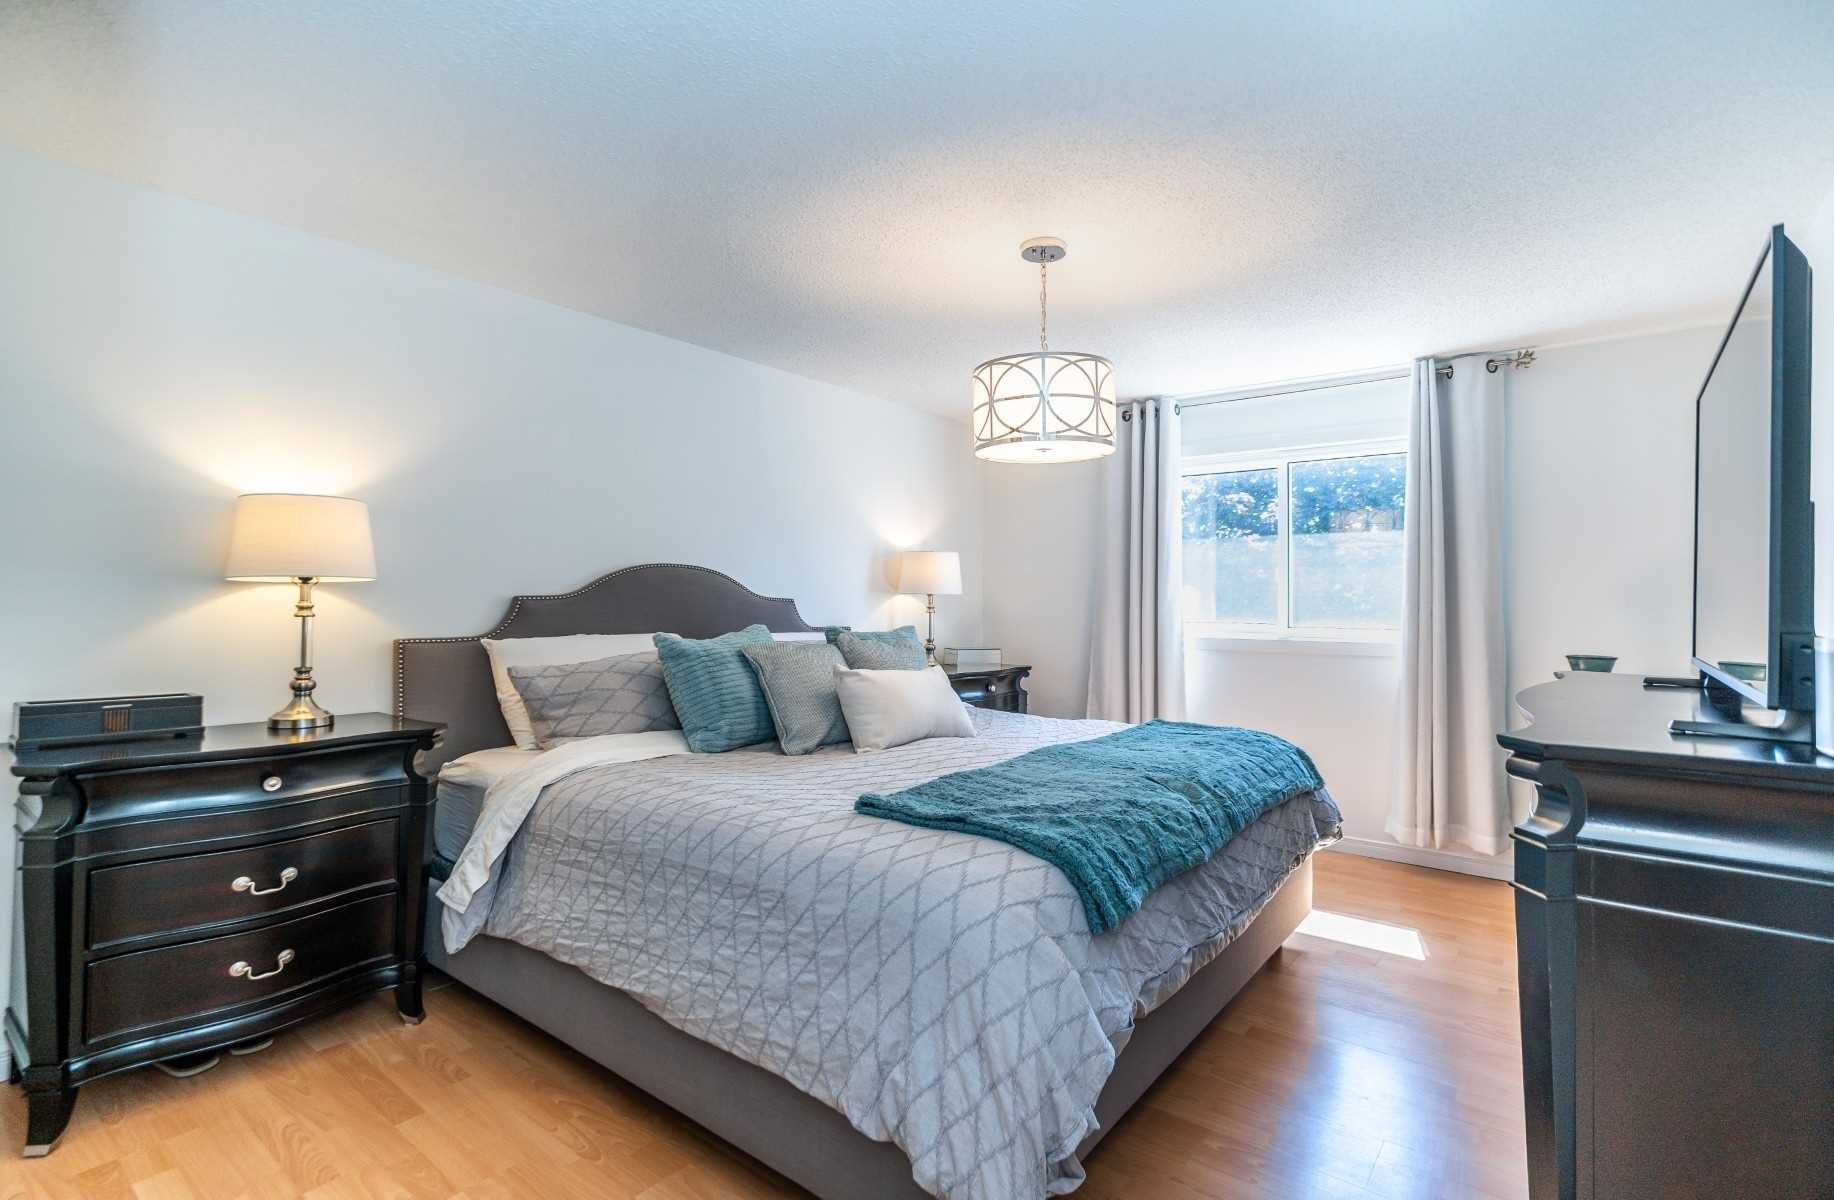 Photo 20: Photos: 1153 Snowberry Court in Oshawa: Pinecrest House (2-Storey) for sale : MLS®# E4794796